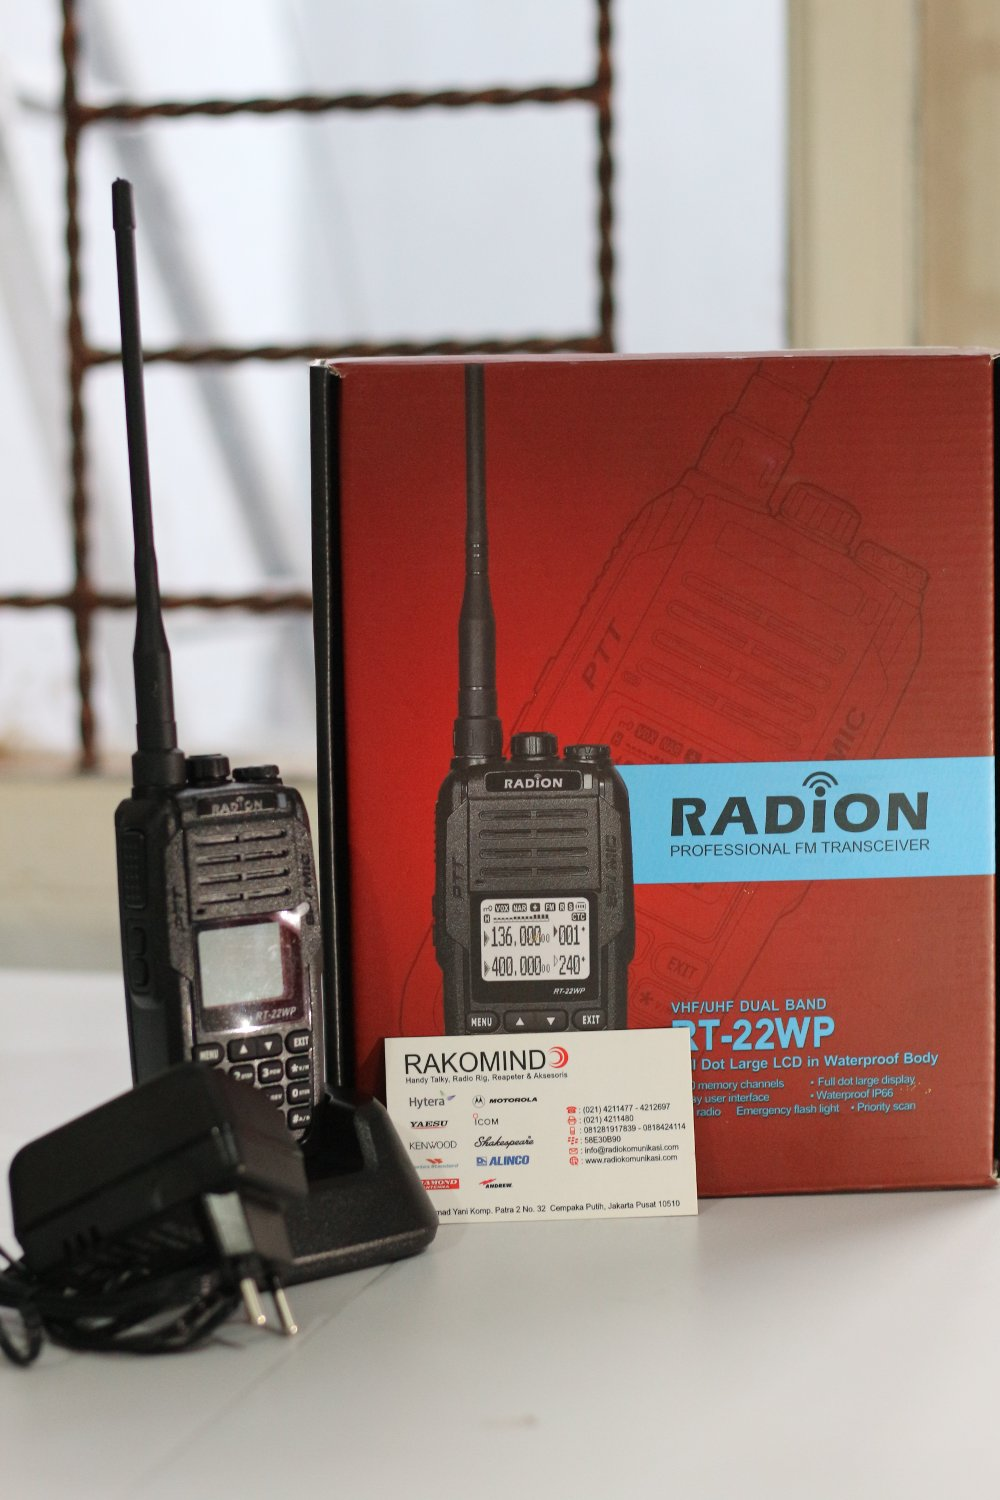 Radion RT-22WP